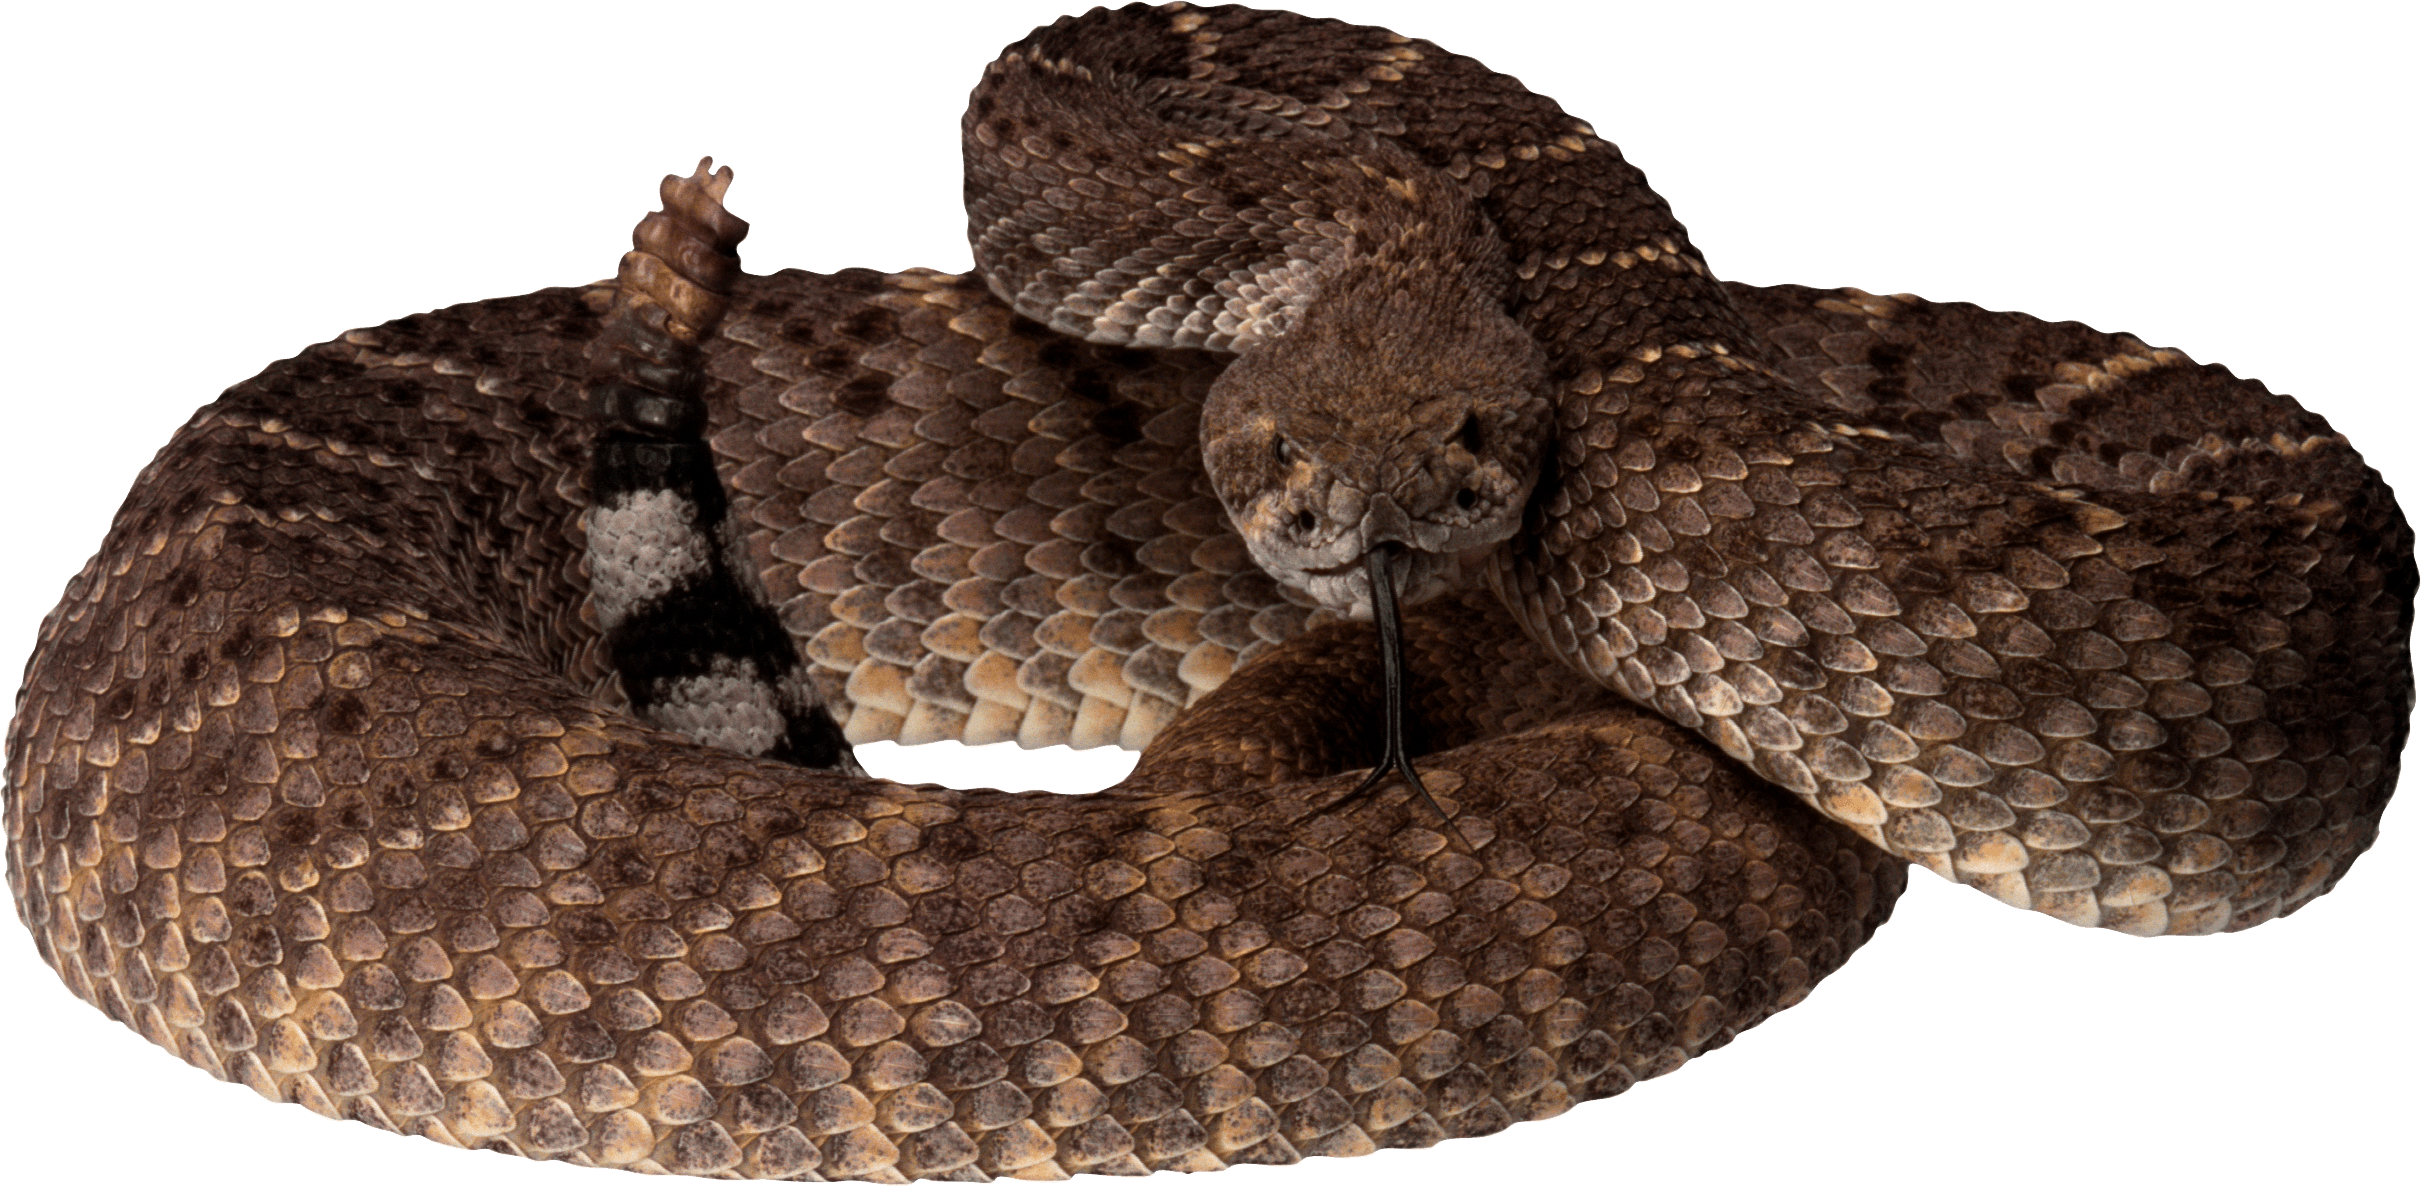 Snake clipart copperhead. Brown png image purepng